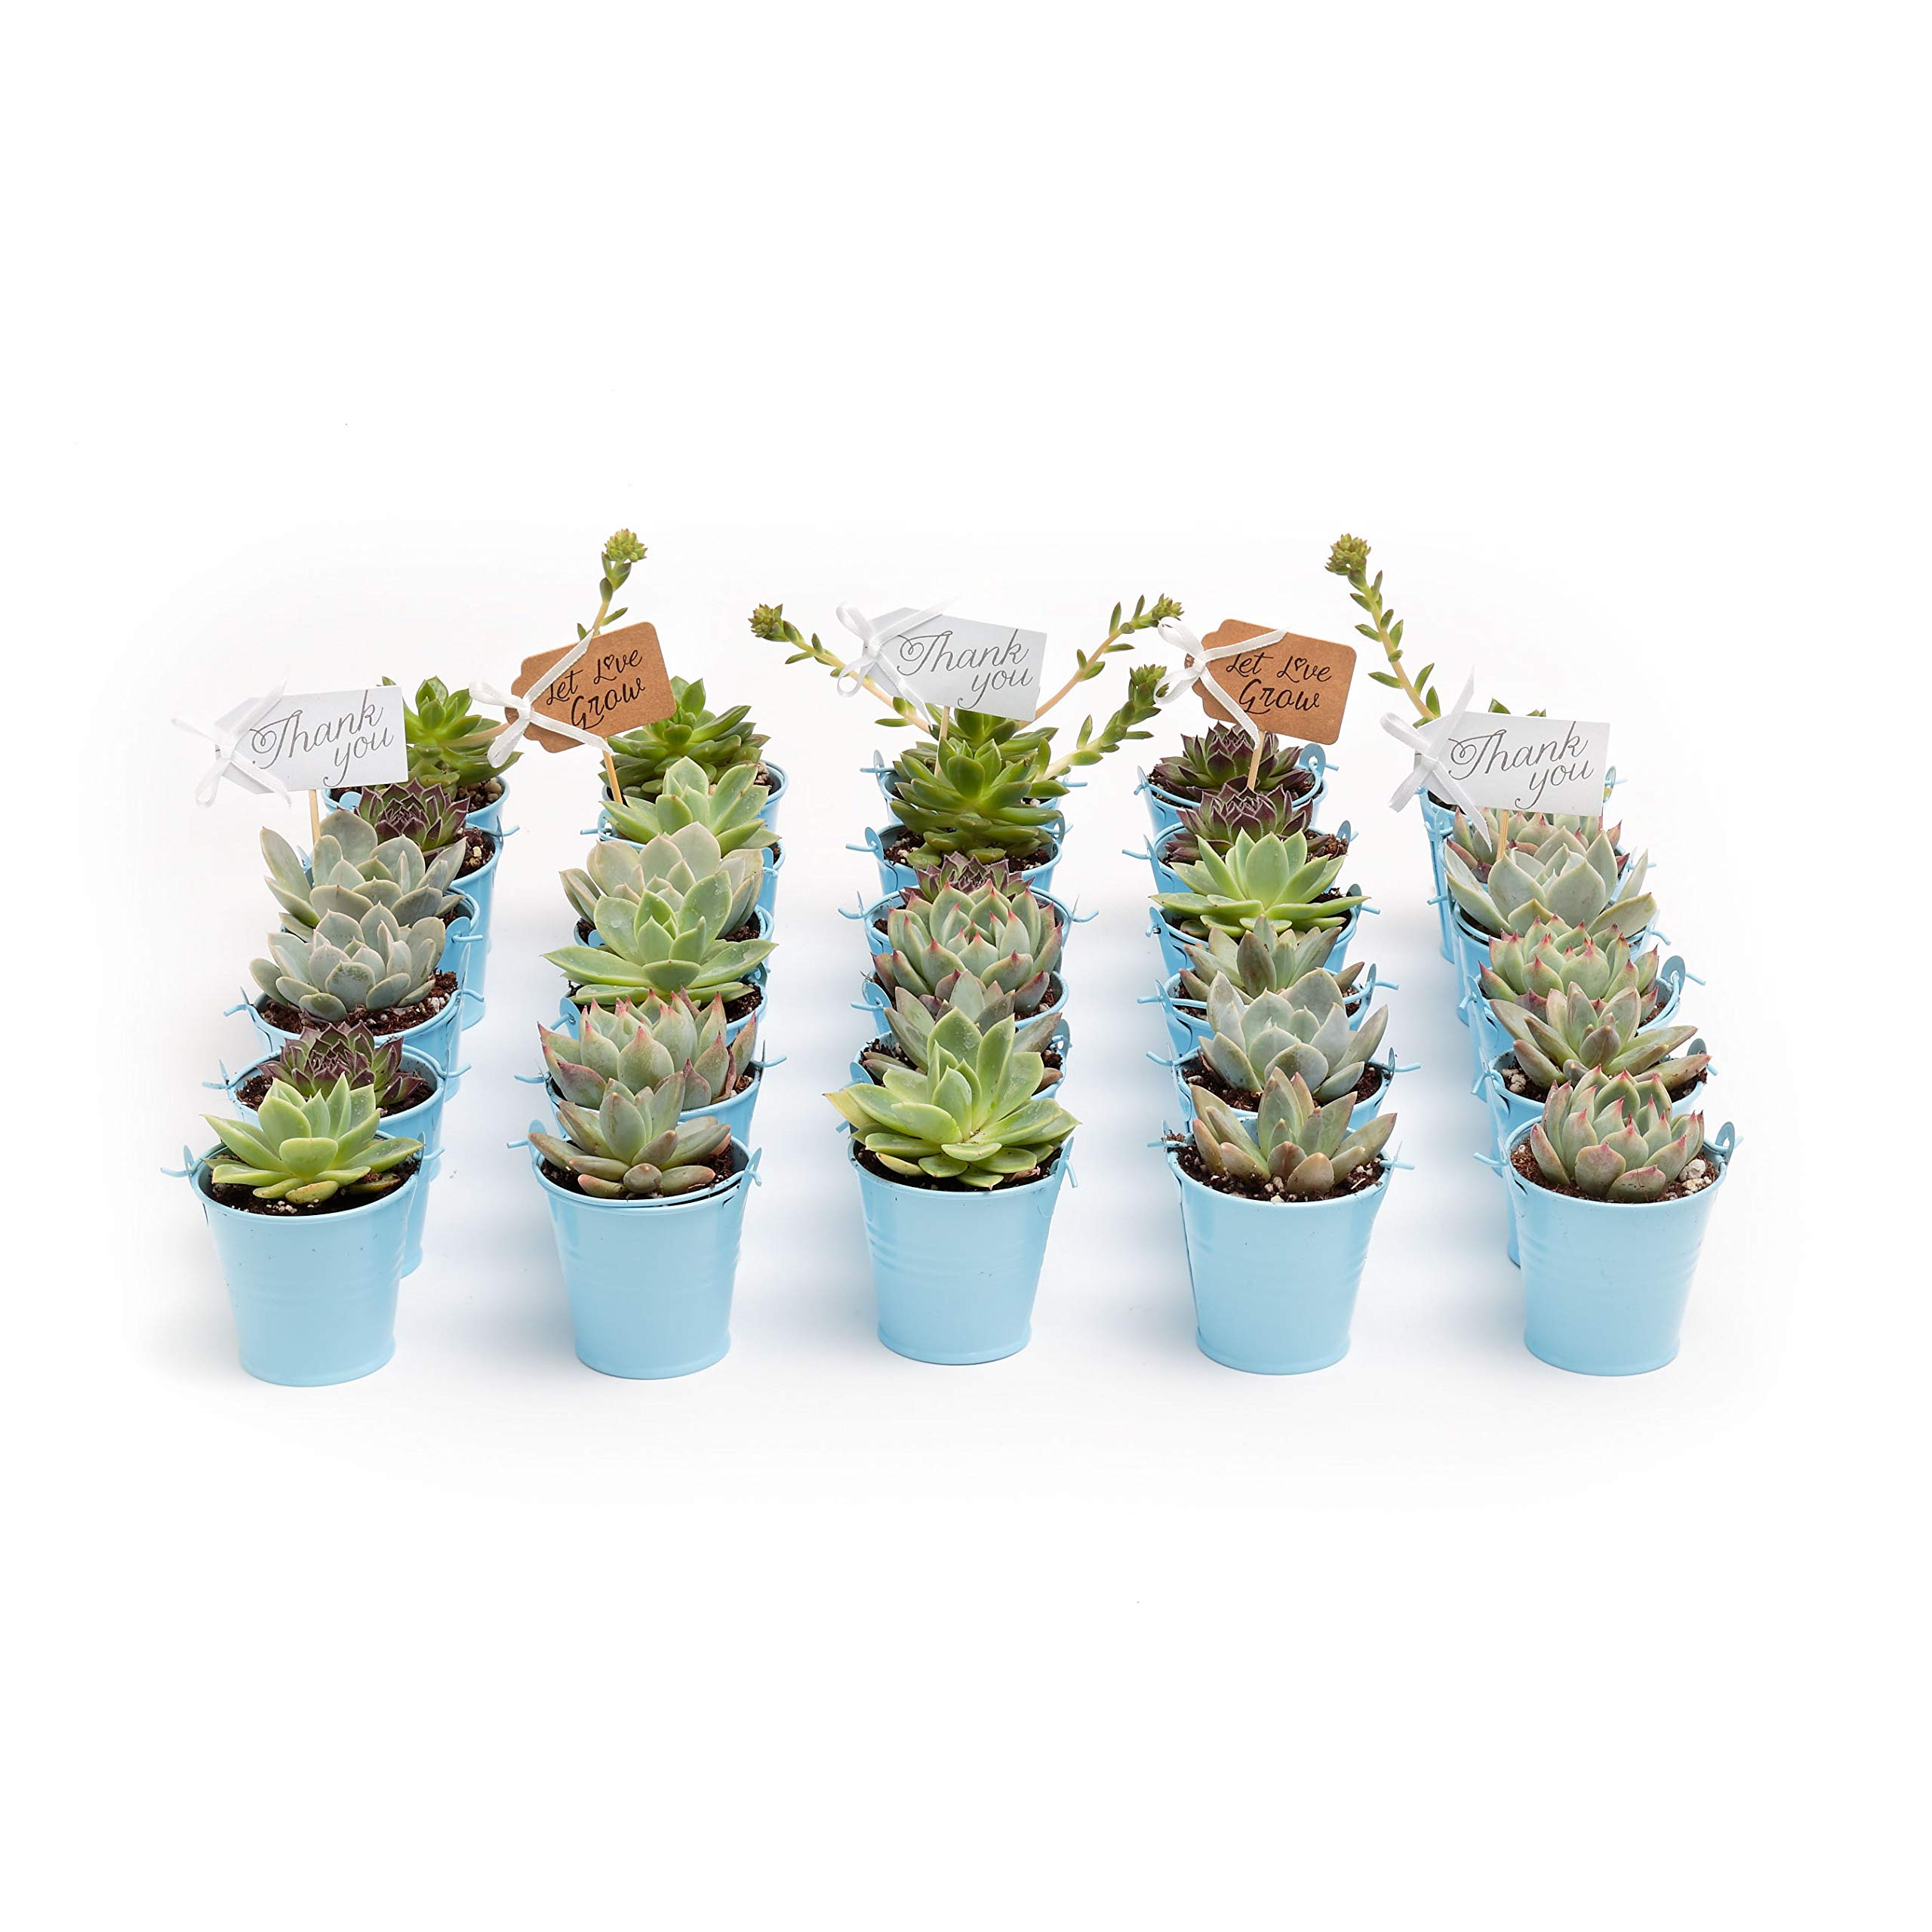 2 in. Wedding Event Rosette Succulents with Blue Metal Pails and Thank You Tags (30) by Succulent Source (Image #2)